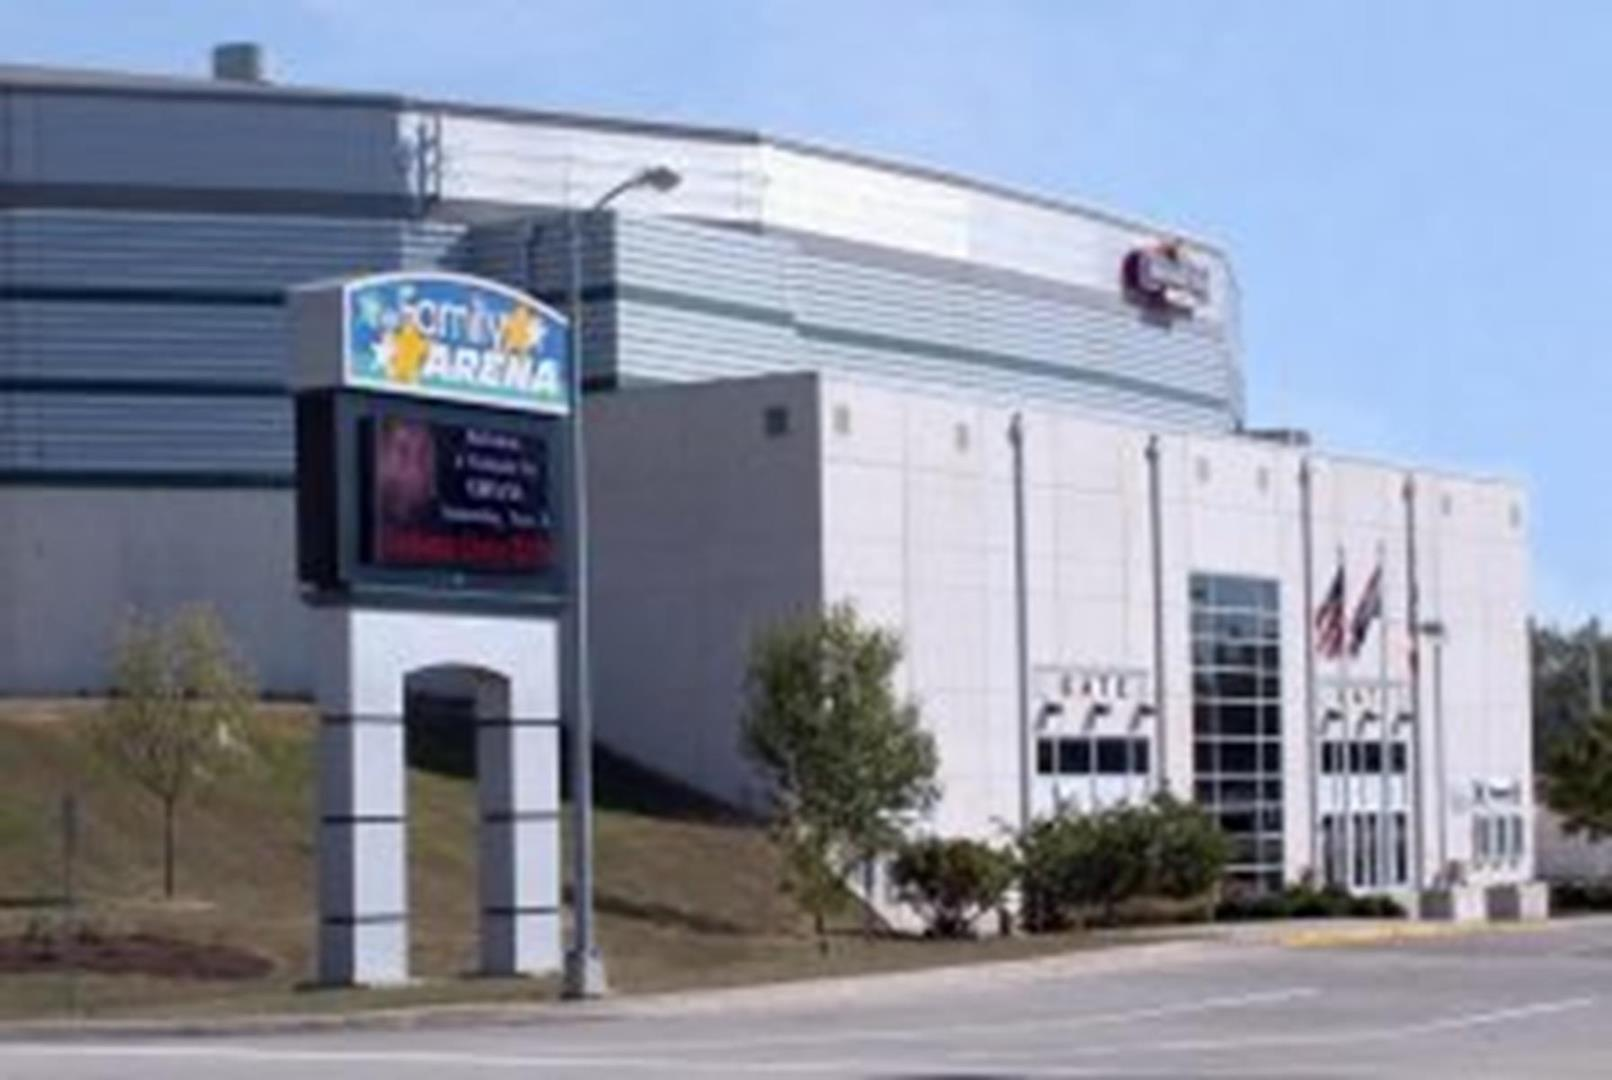 Family Arena hosts everything from hockey and basketball games to concerts.